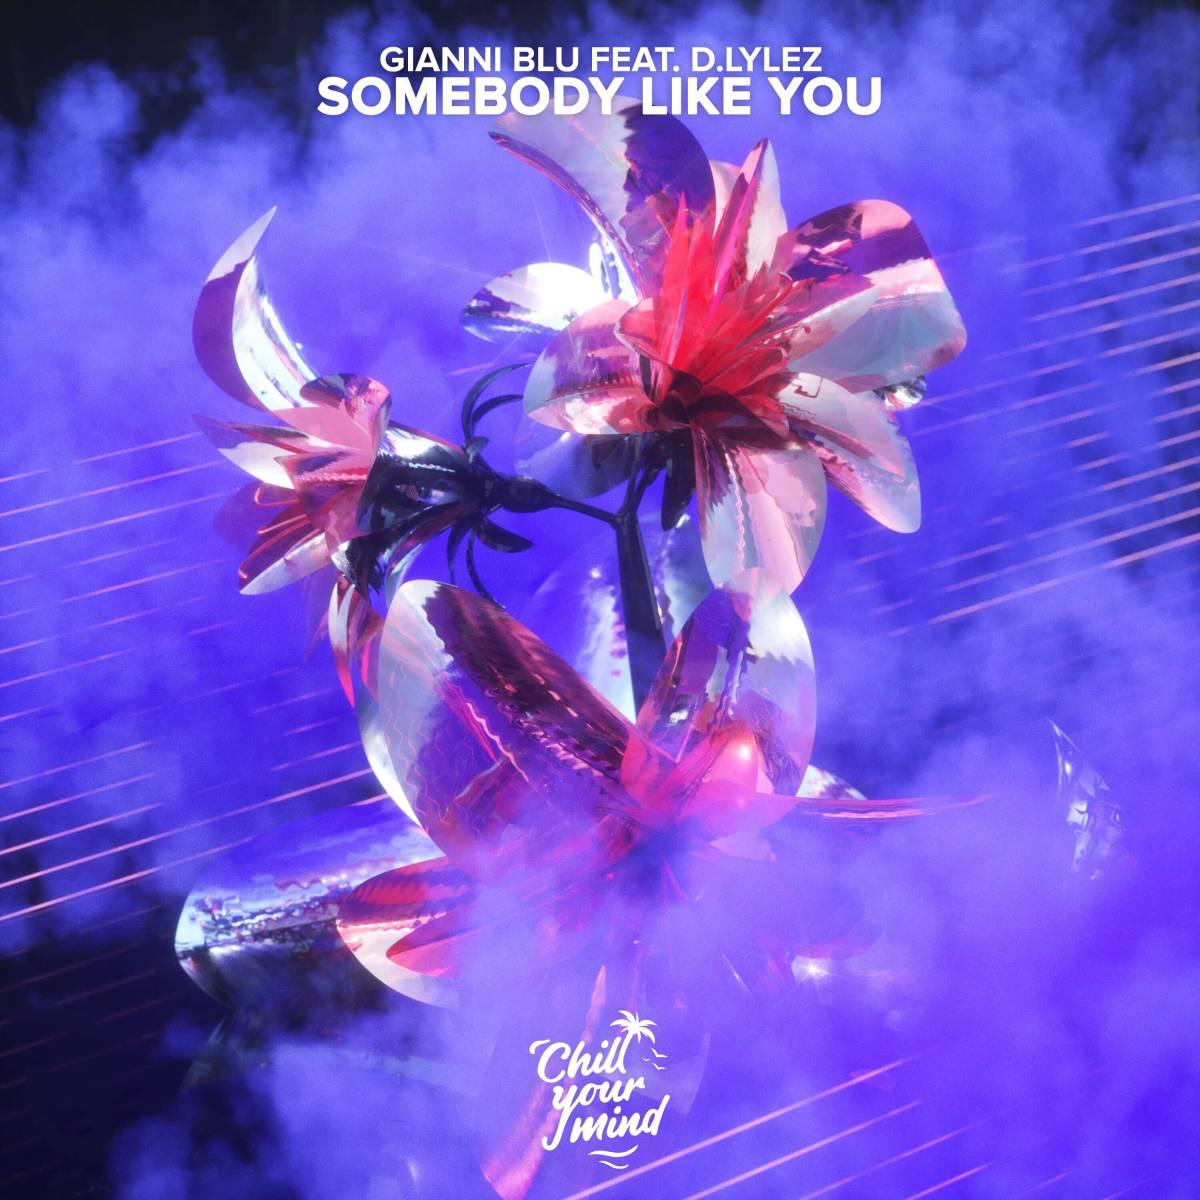 Gianni Blu feat. D.Lylez - Somebody Like You (ChillYourMind)